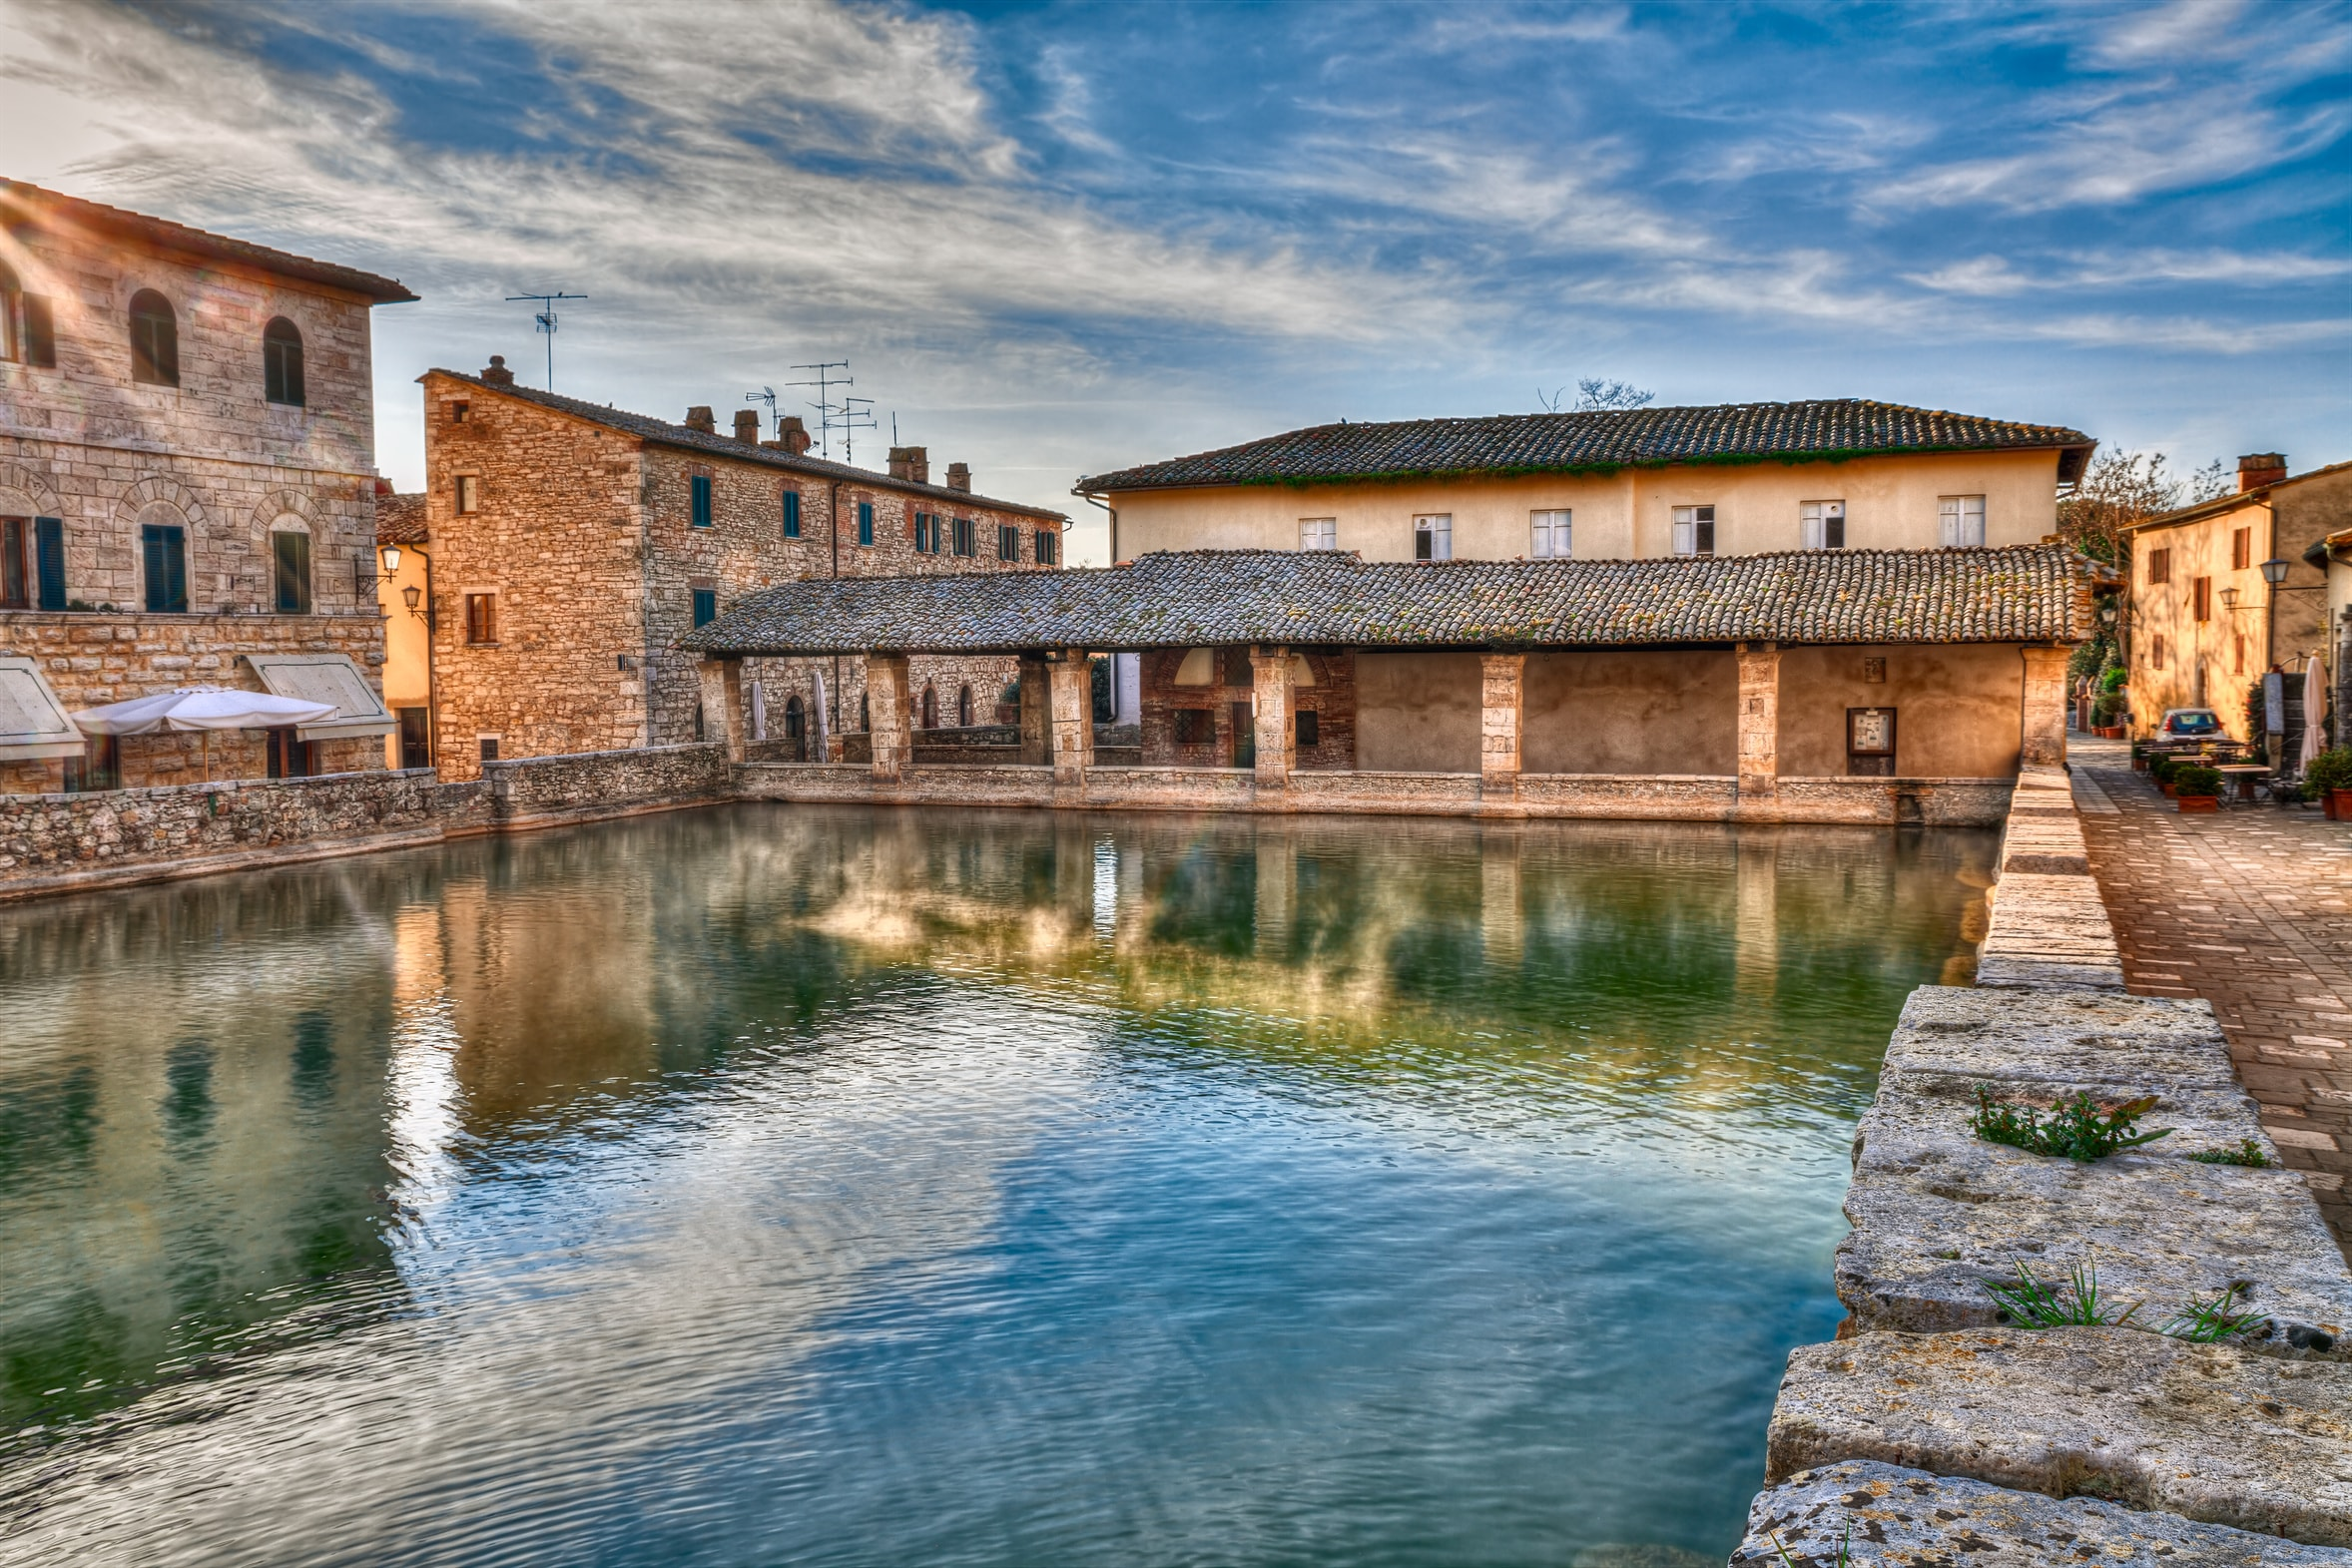 Bagno Vignoni  Italys 19 most beautiful villages  Travel